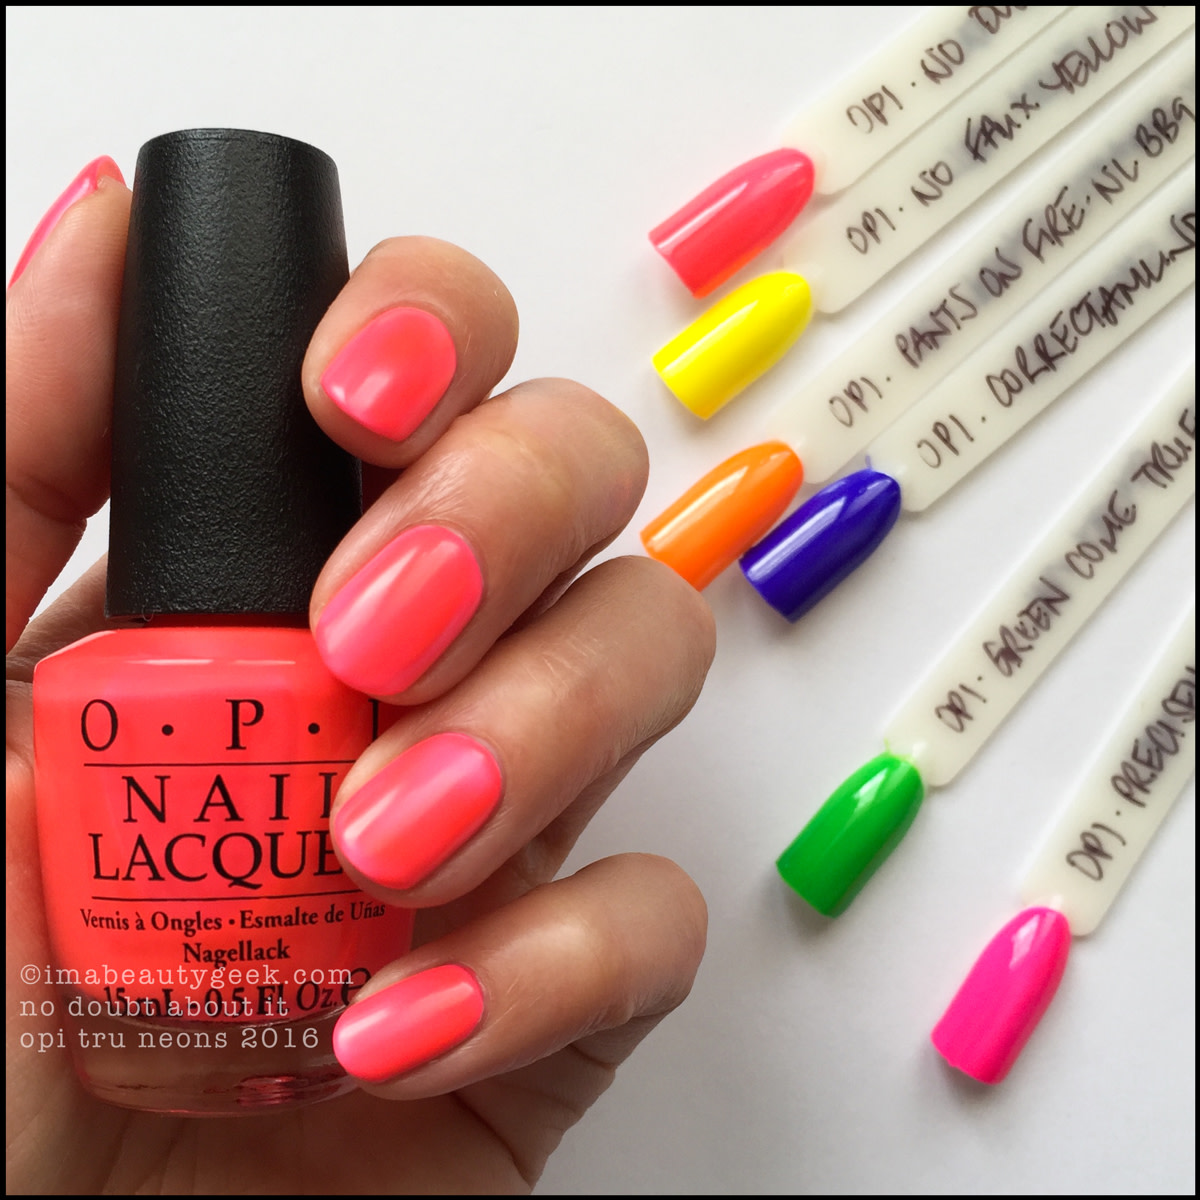 OPI No Doubt About It_OPI Tru Neons Summer 2016 Swatches Review